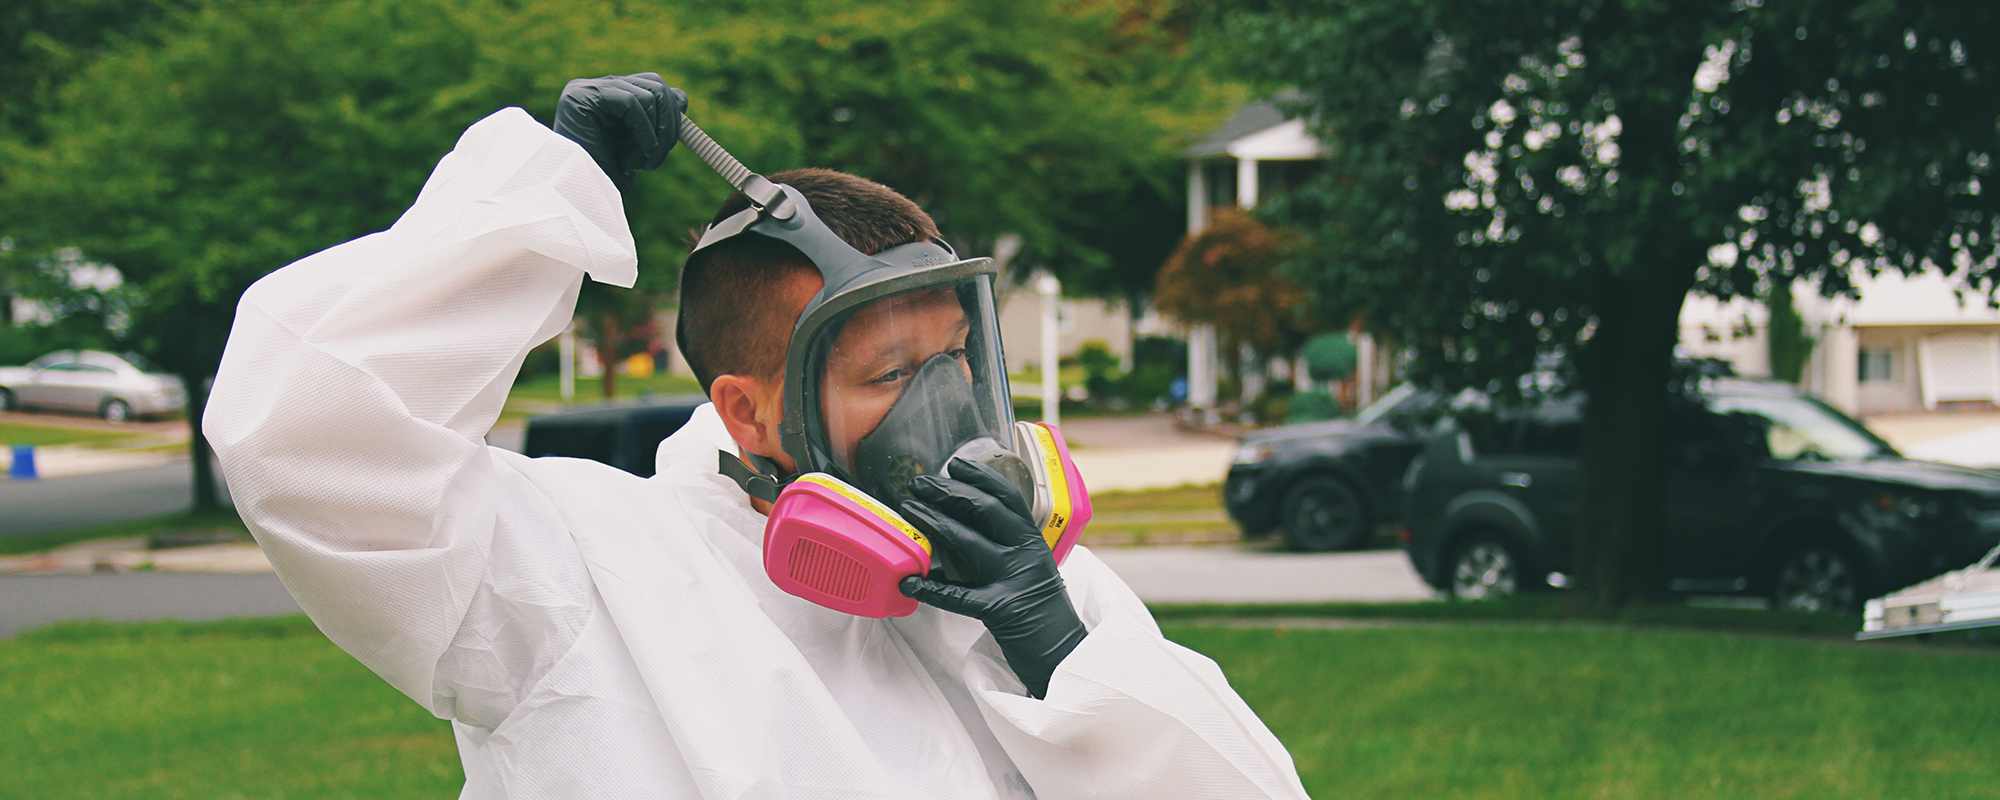 mold-remediation-montgomery-county-pa